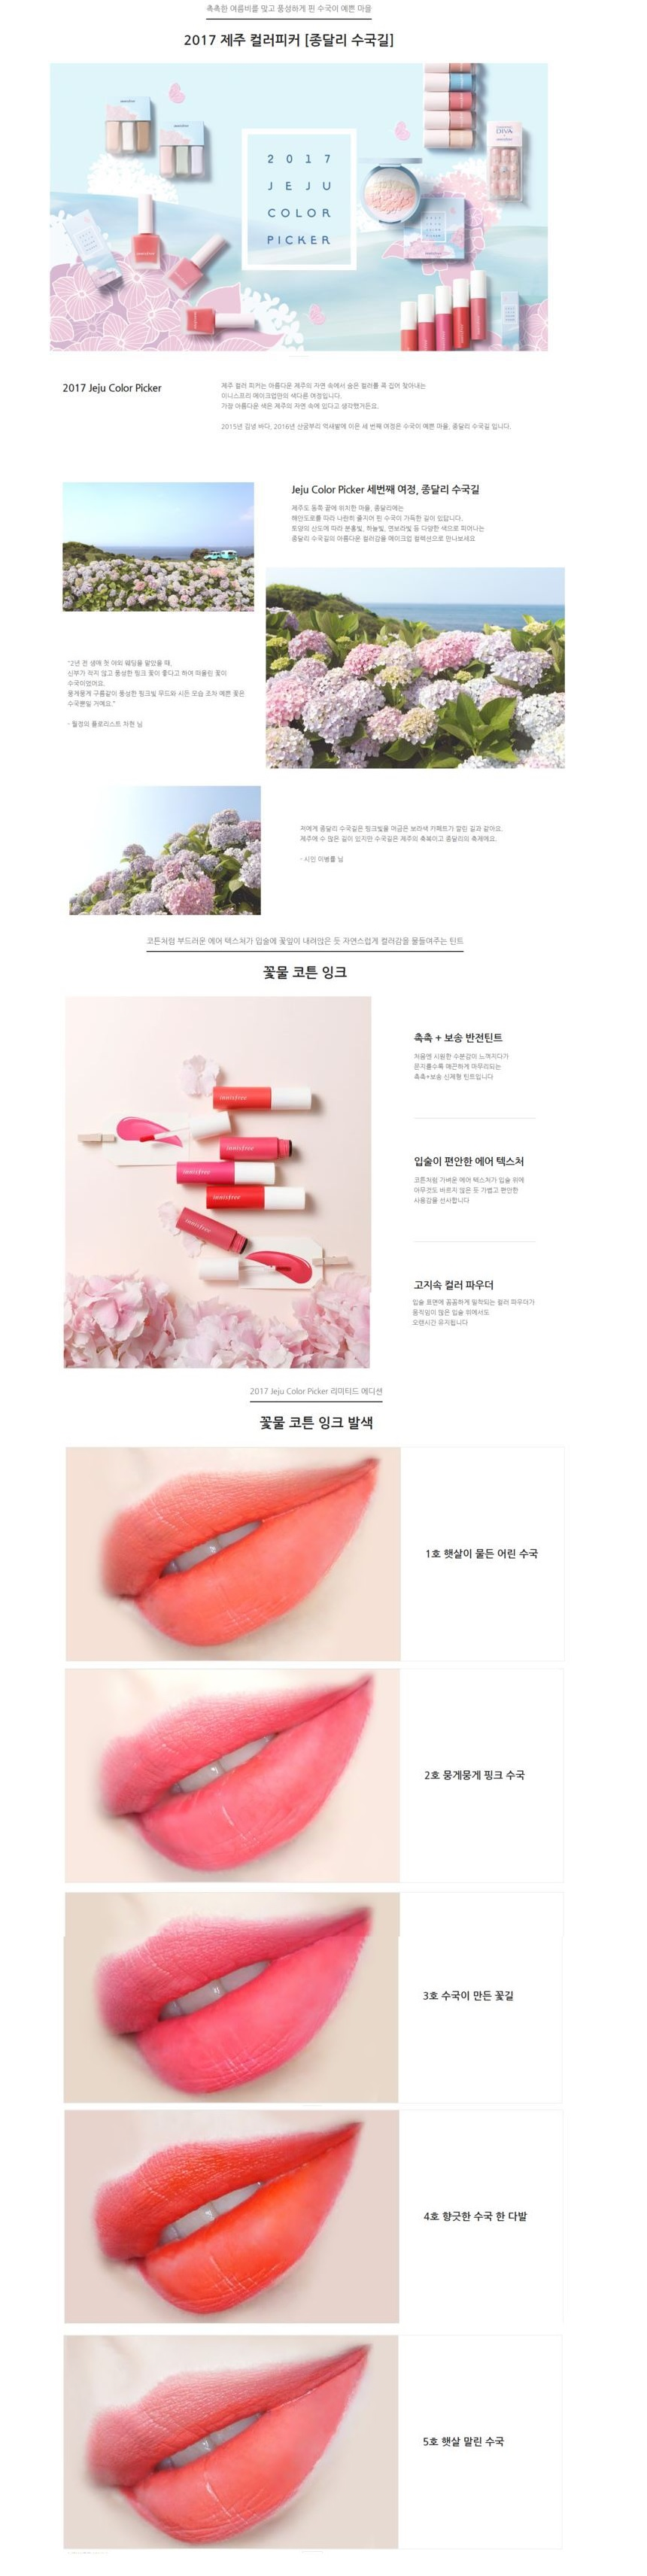 Innisfree Flower Cotton Ink korean cosmetic makeup product online shop malaysia norway finland1